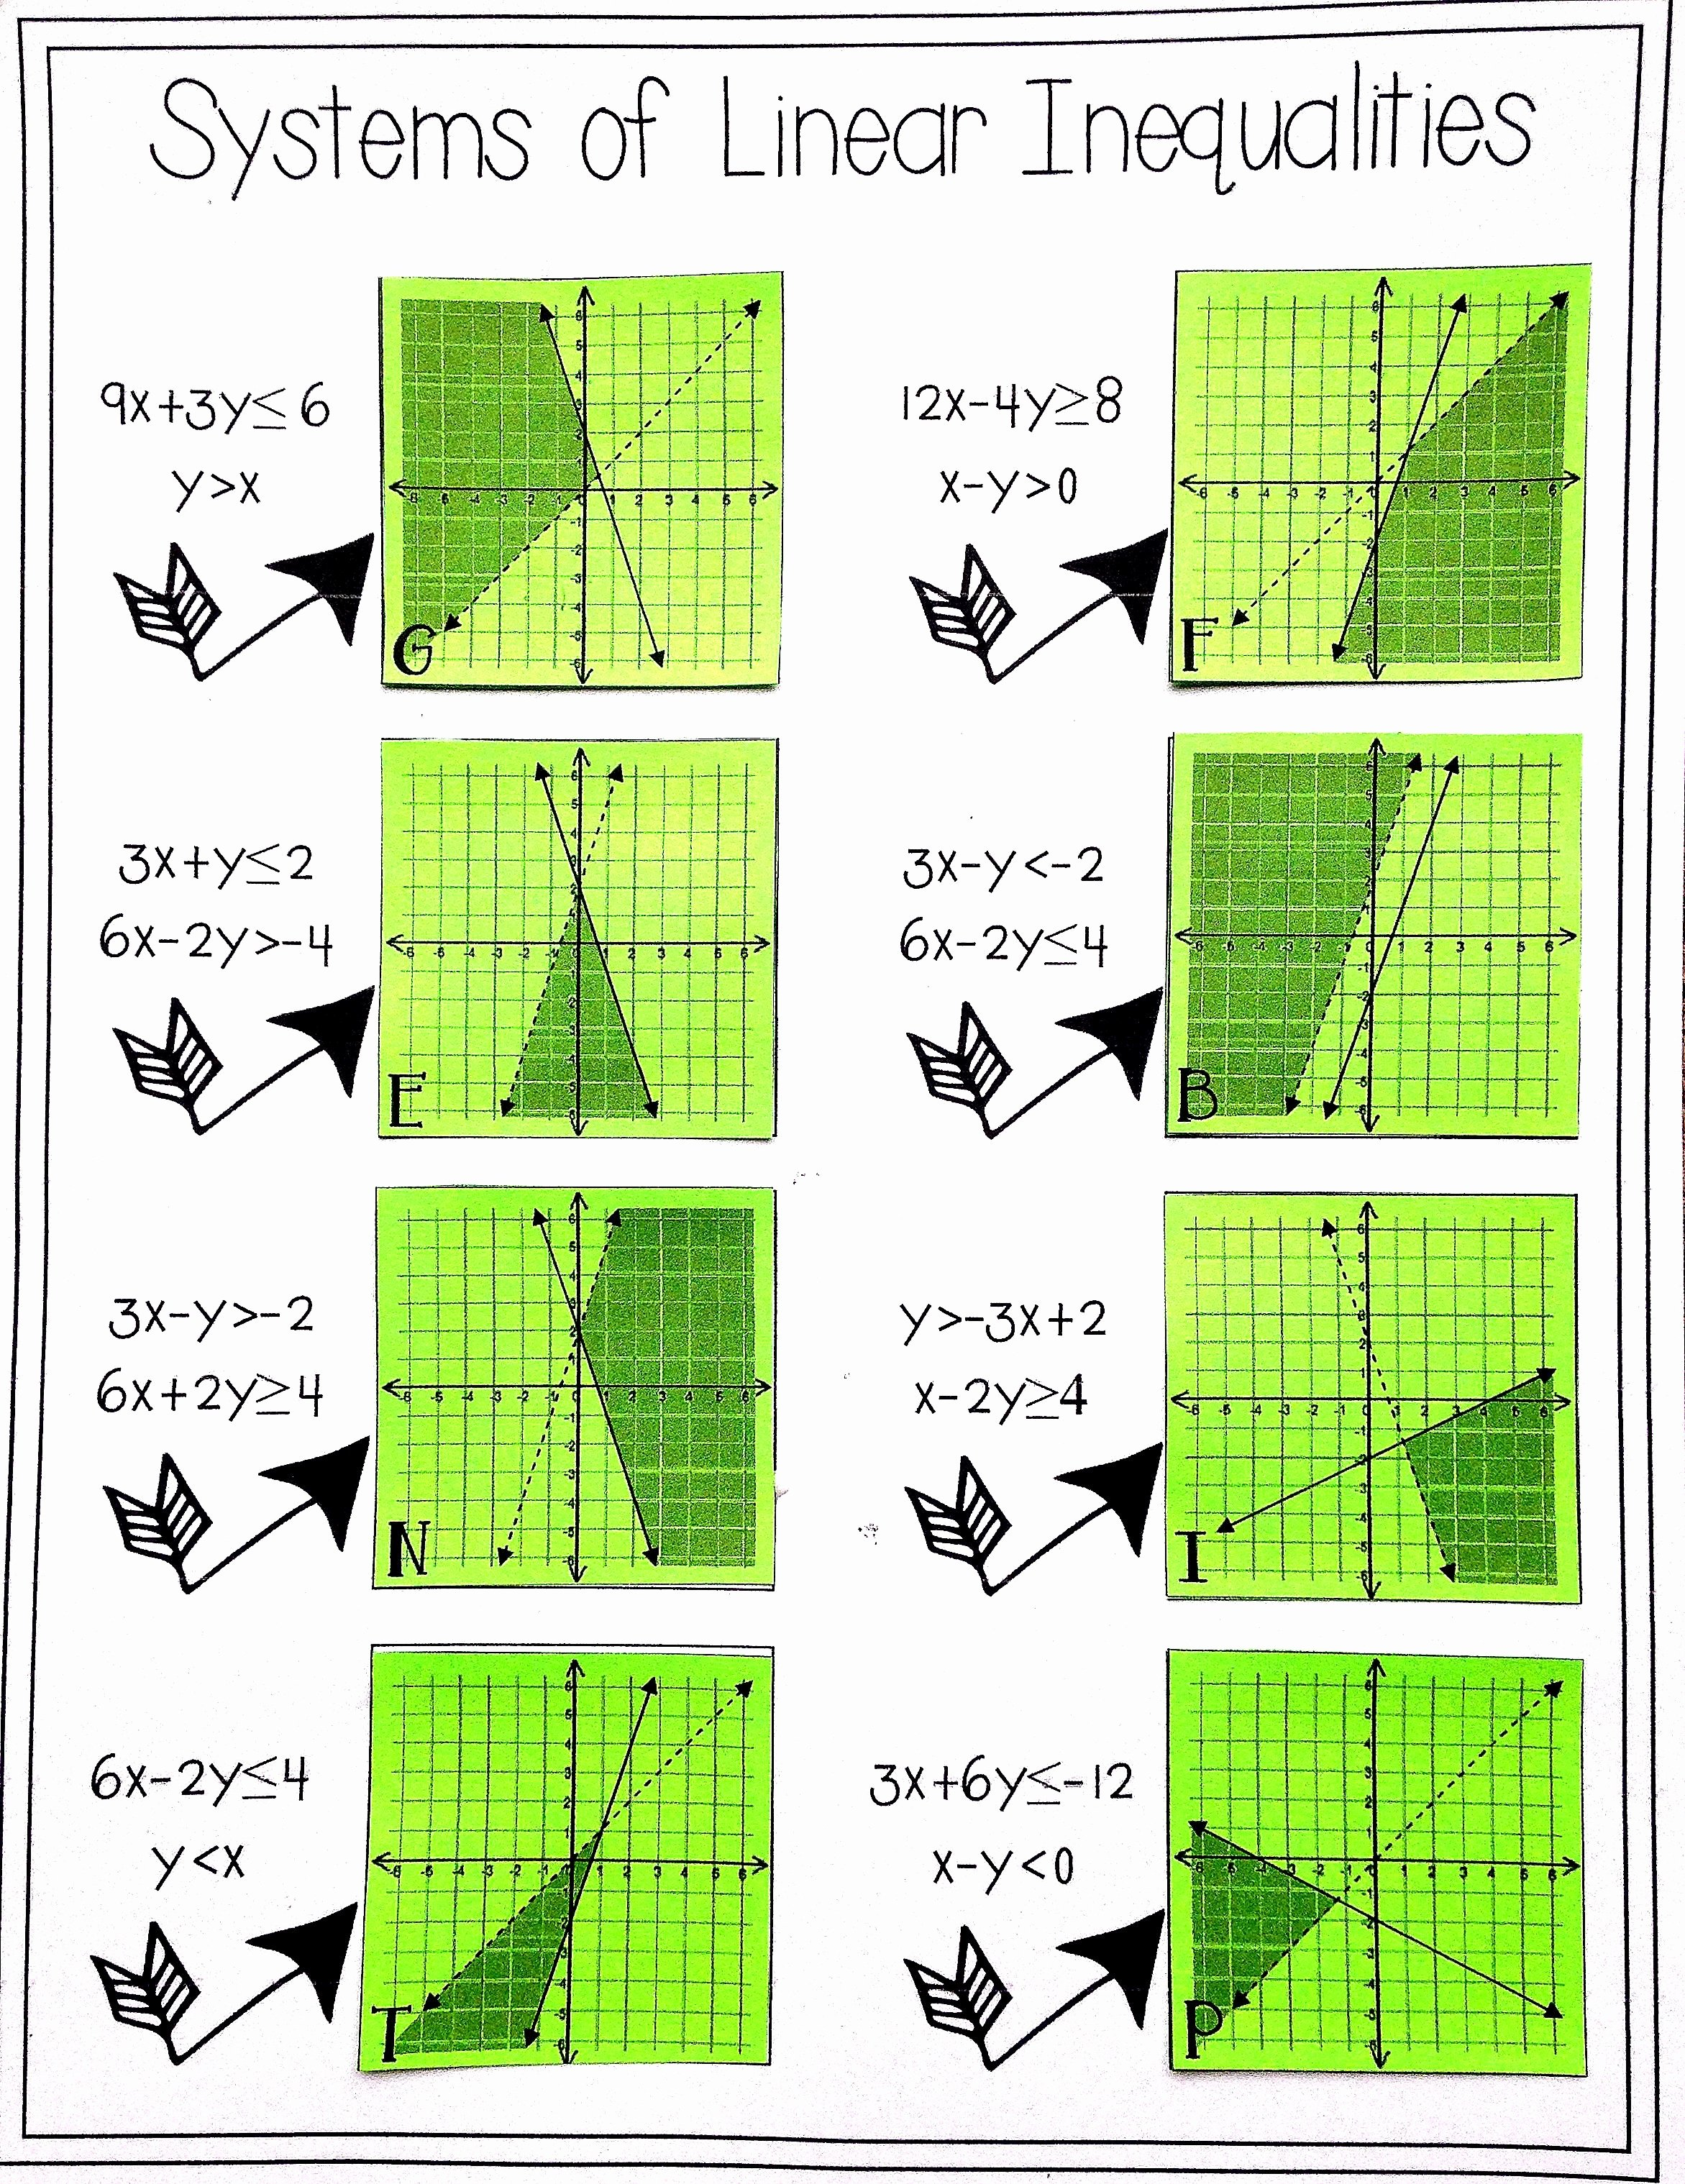 Graphing Linear Inequalities Worksheet Answers Best Of Systems Of Inequalities Matching Systems and Graphs